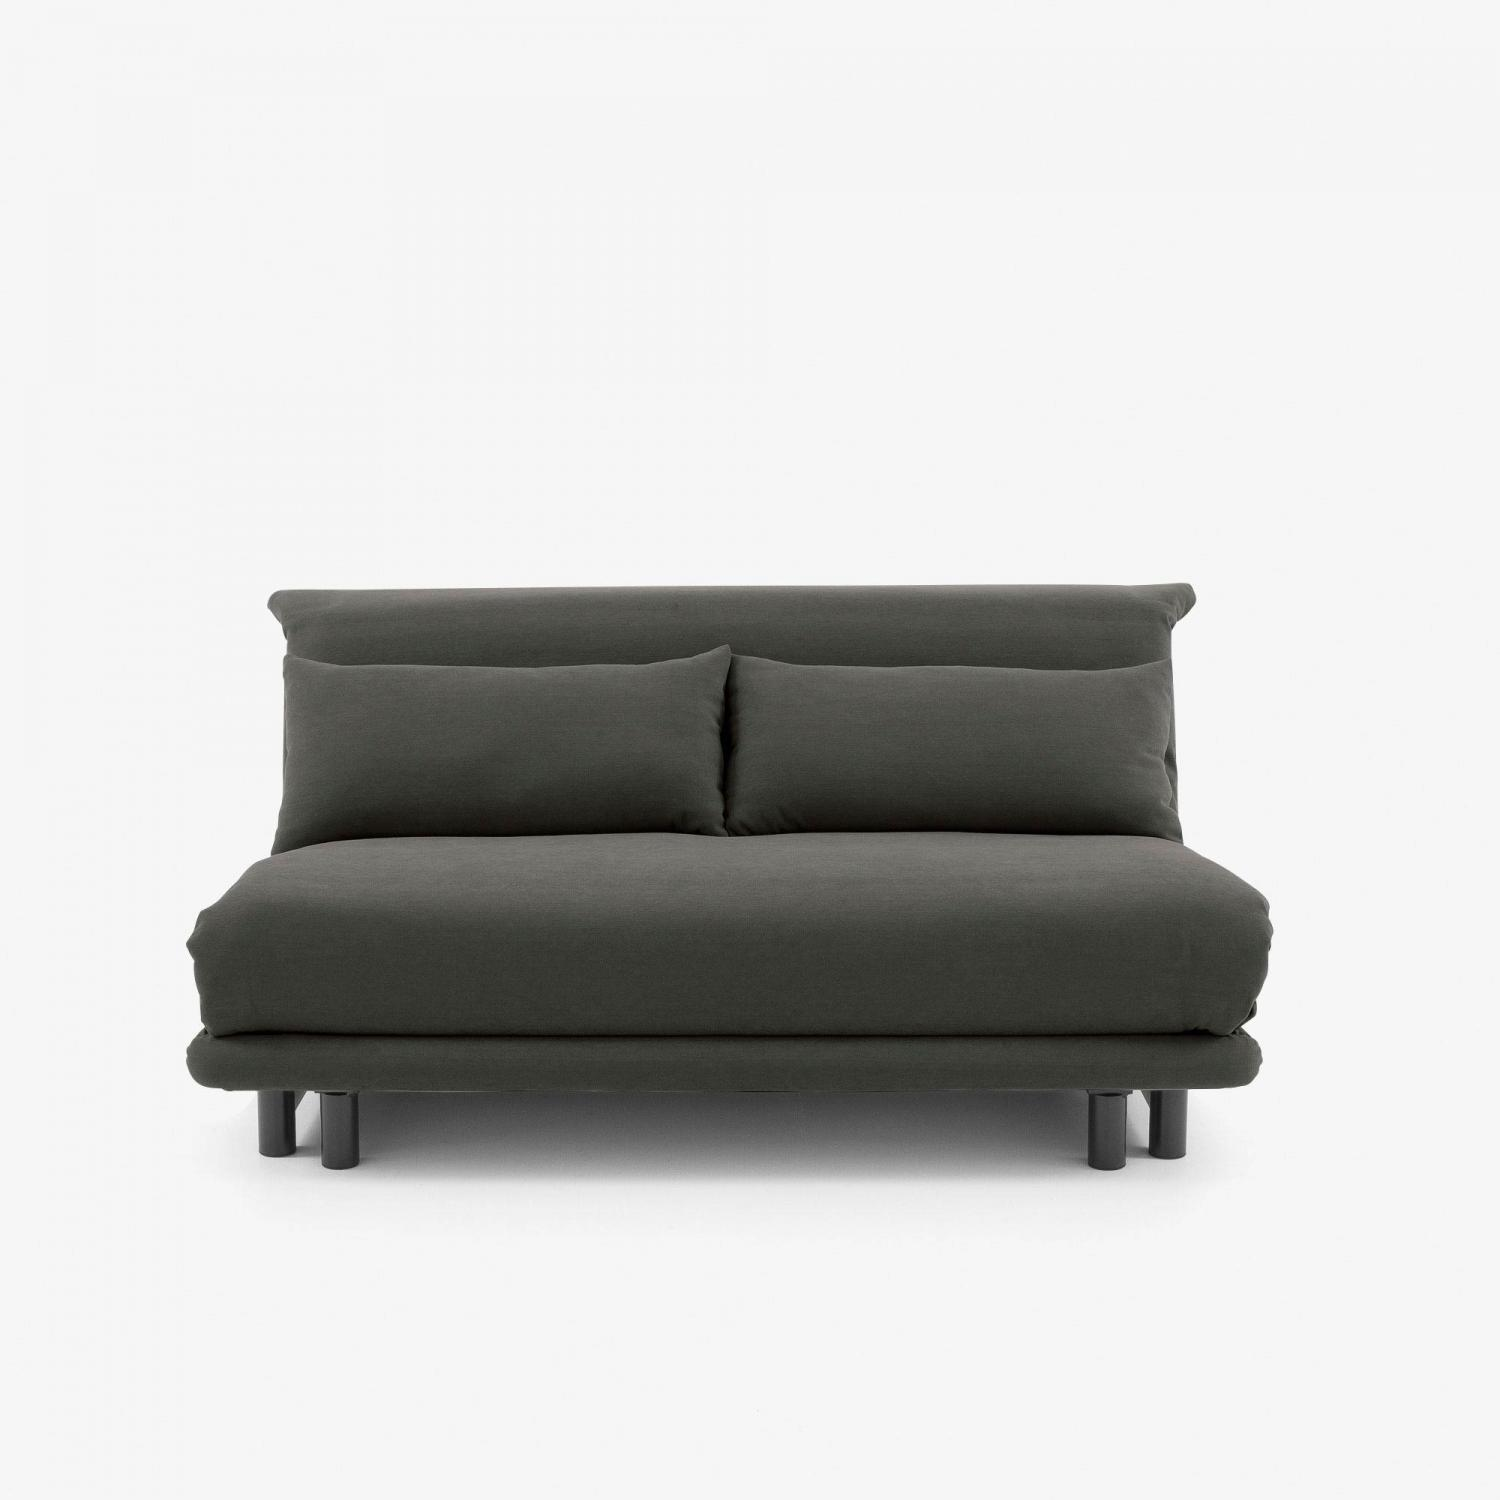 Multy Anthracite Ligne Roset Hamburg